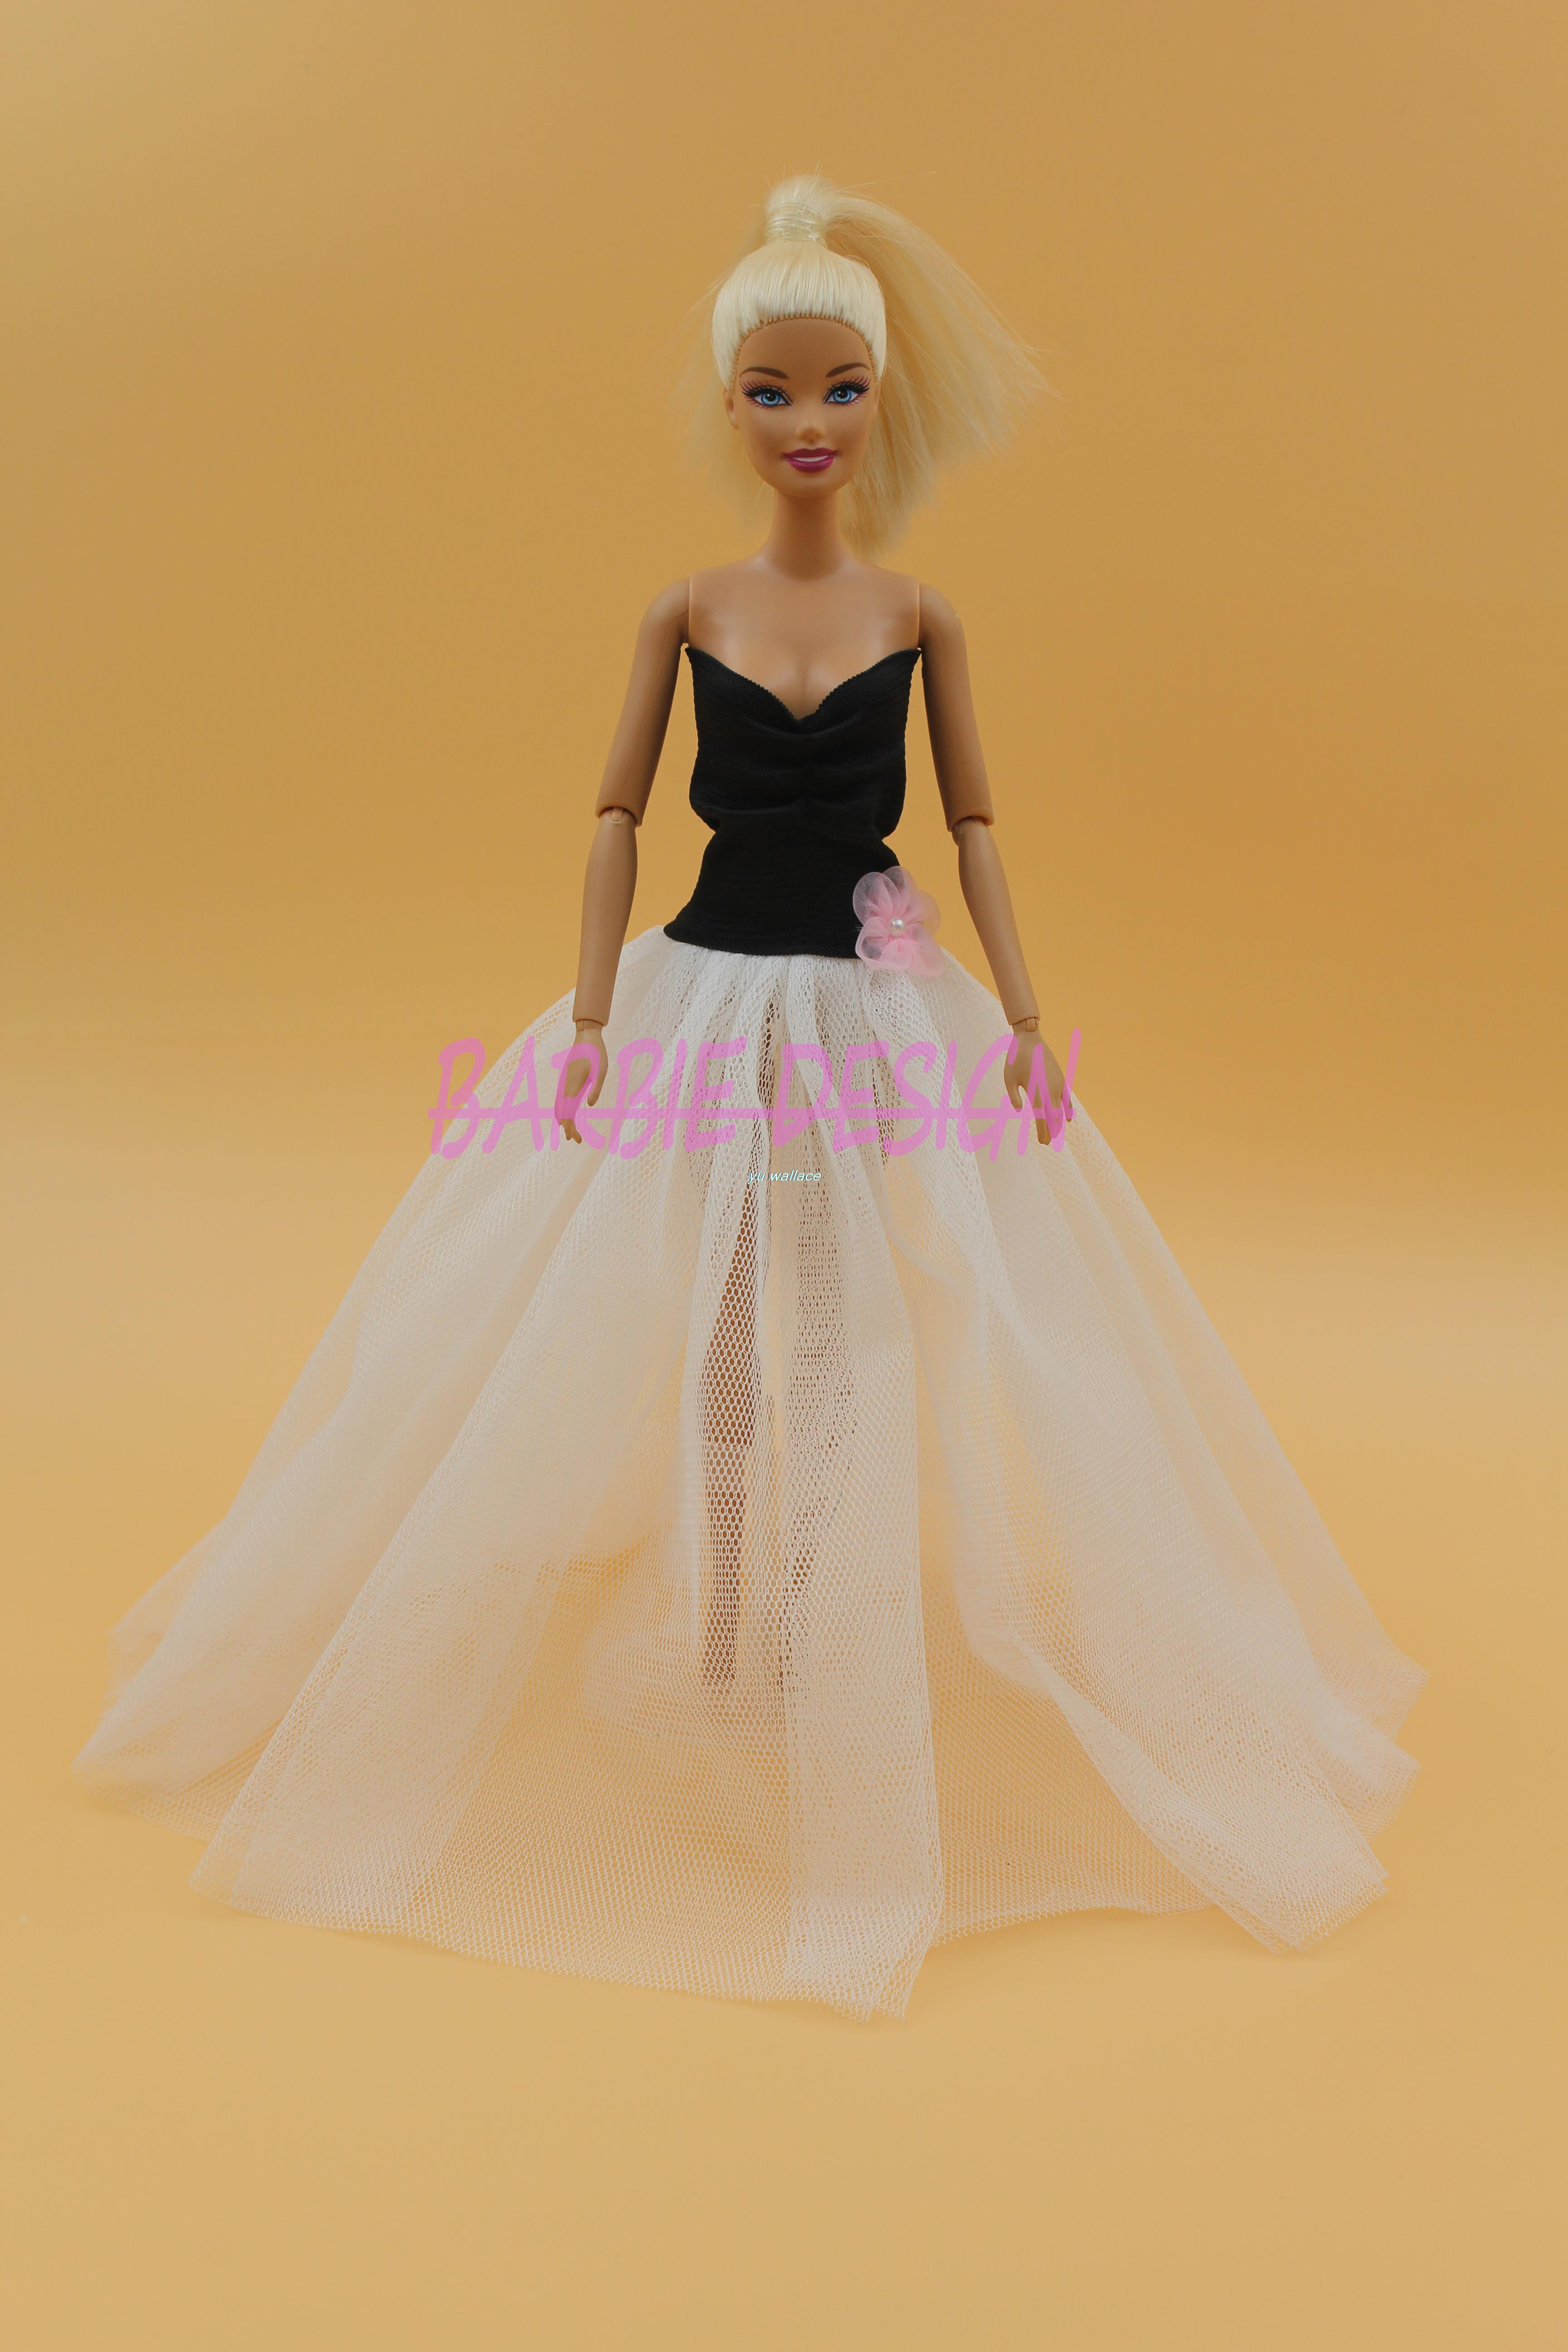 New Arrival Doll Outfit Collection Luxury Fashipon Evening Dress Clothes For Barbie Doll Best Gift Baby